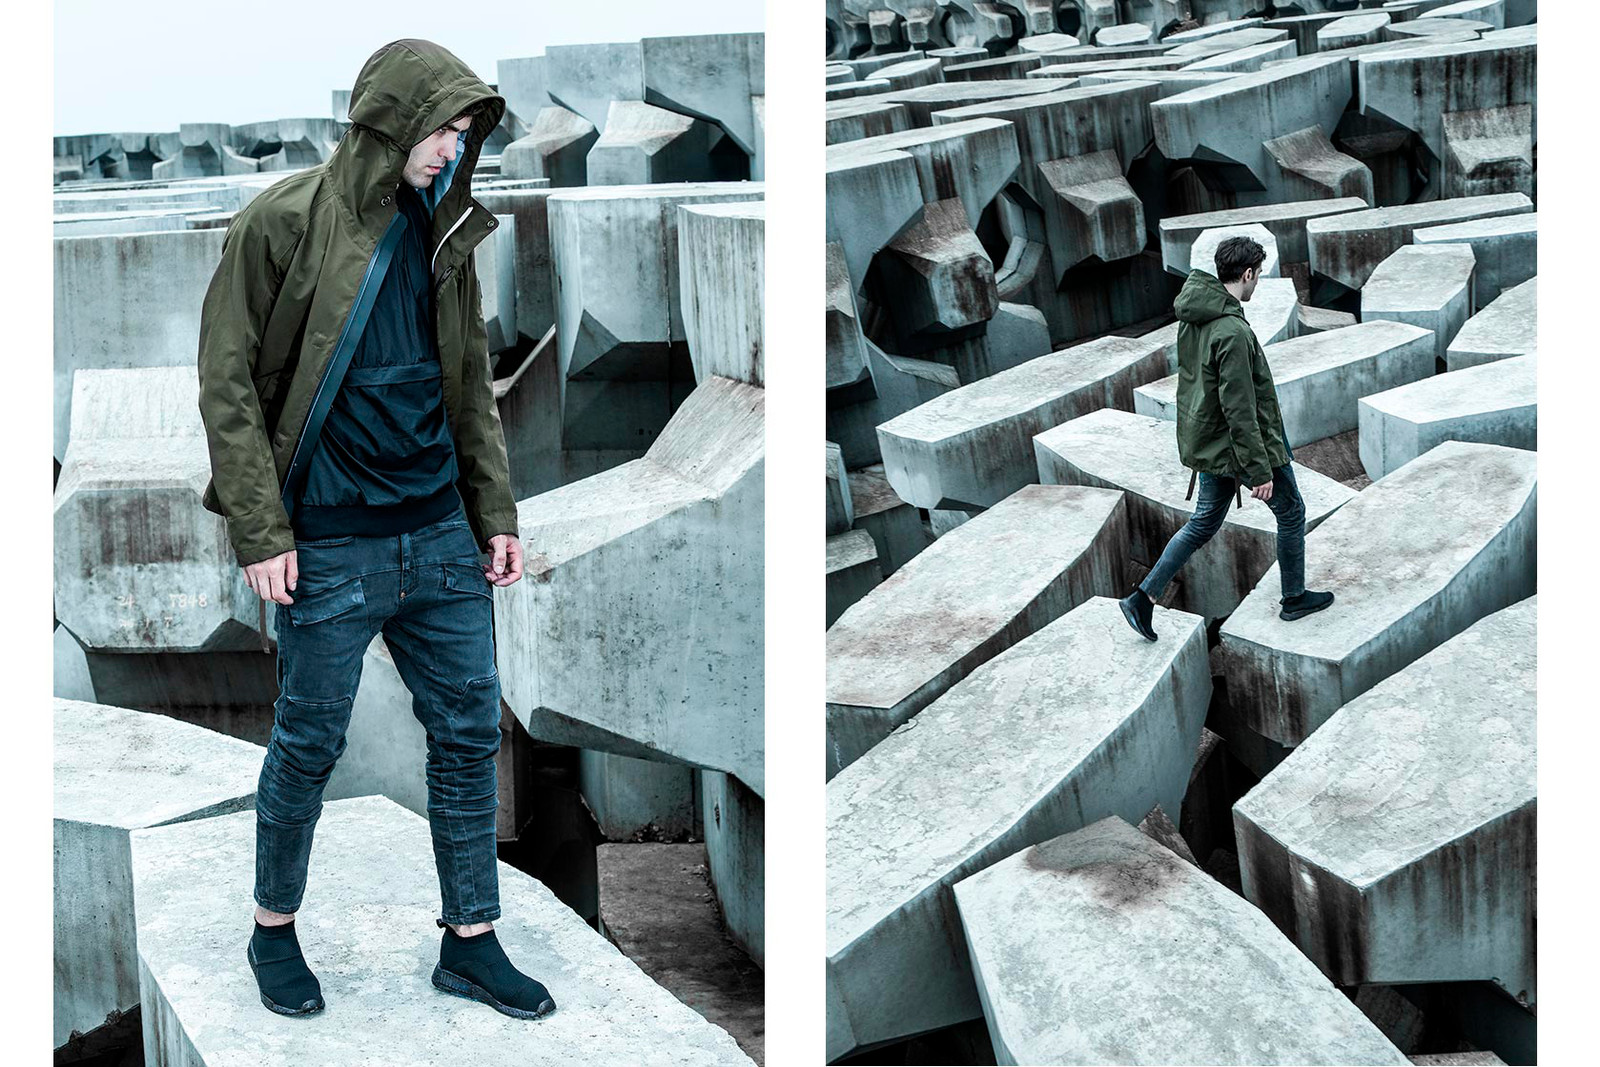 Best Affordable Techwear Fashion Brands CLOUDBURST 4Dimension 0608WEAR KRAKATAU Riot Division